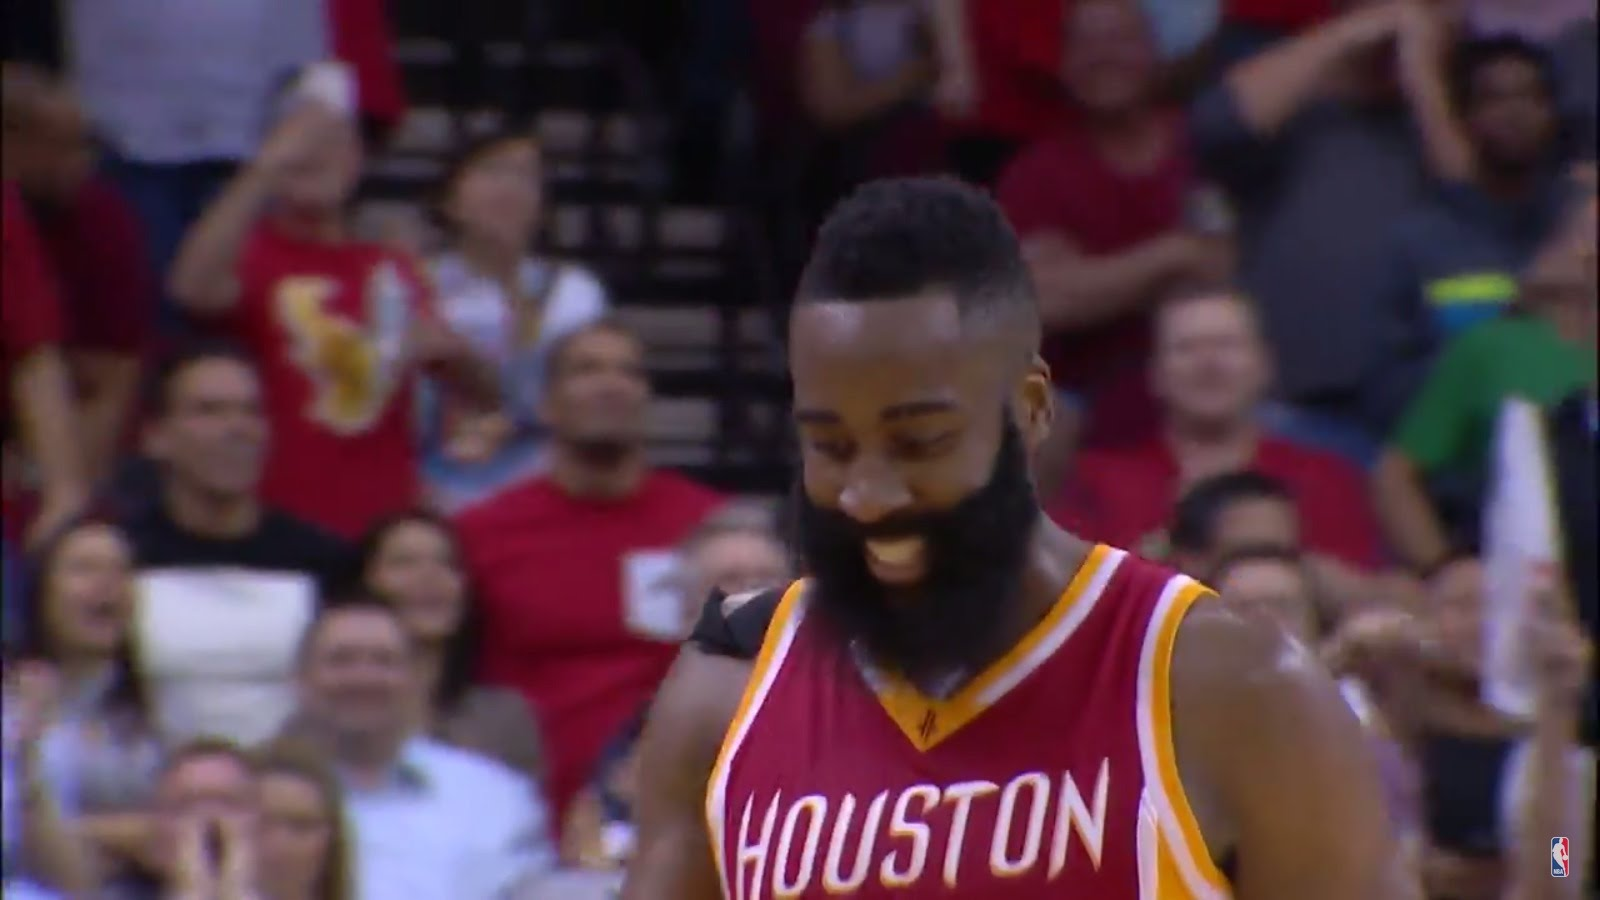 James Harden drops a career high 50 points